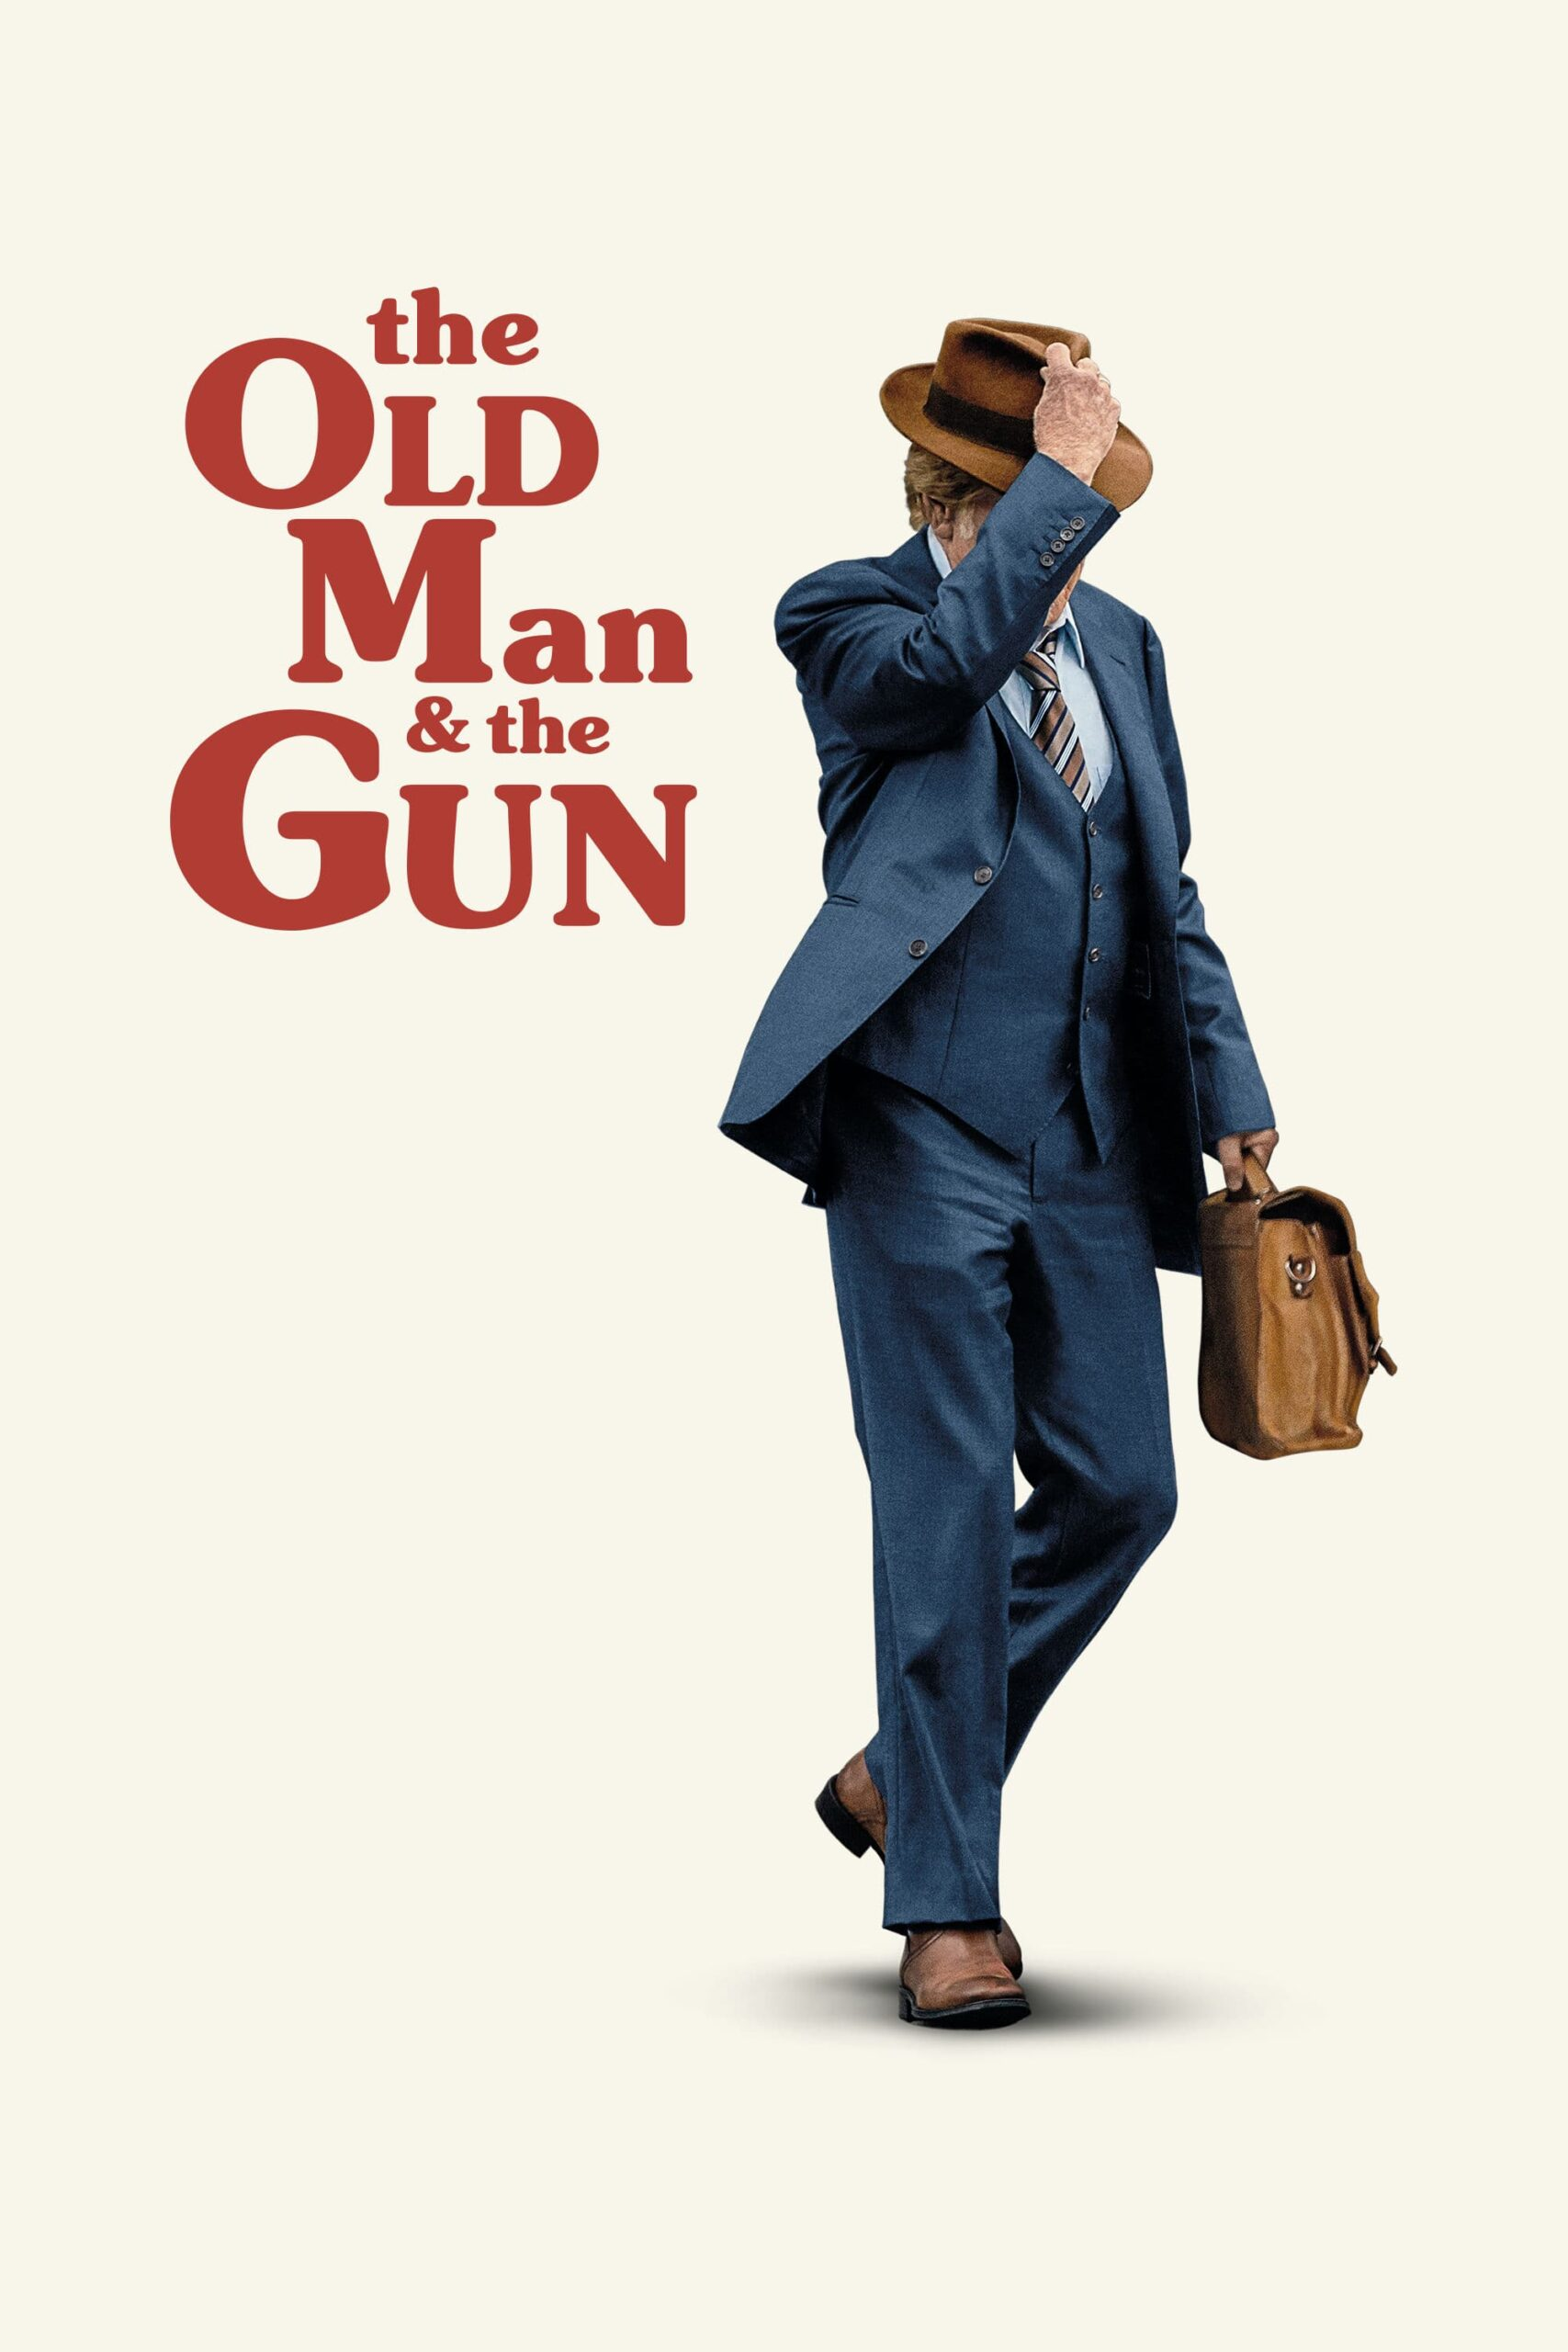 The Old Man & the Gun Movie Streaming Online Watch on Google Play, Youtube